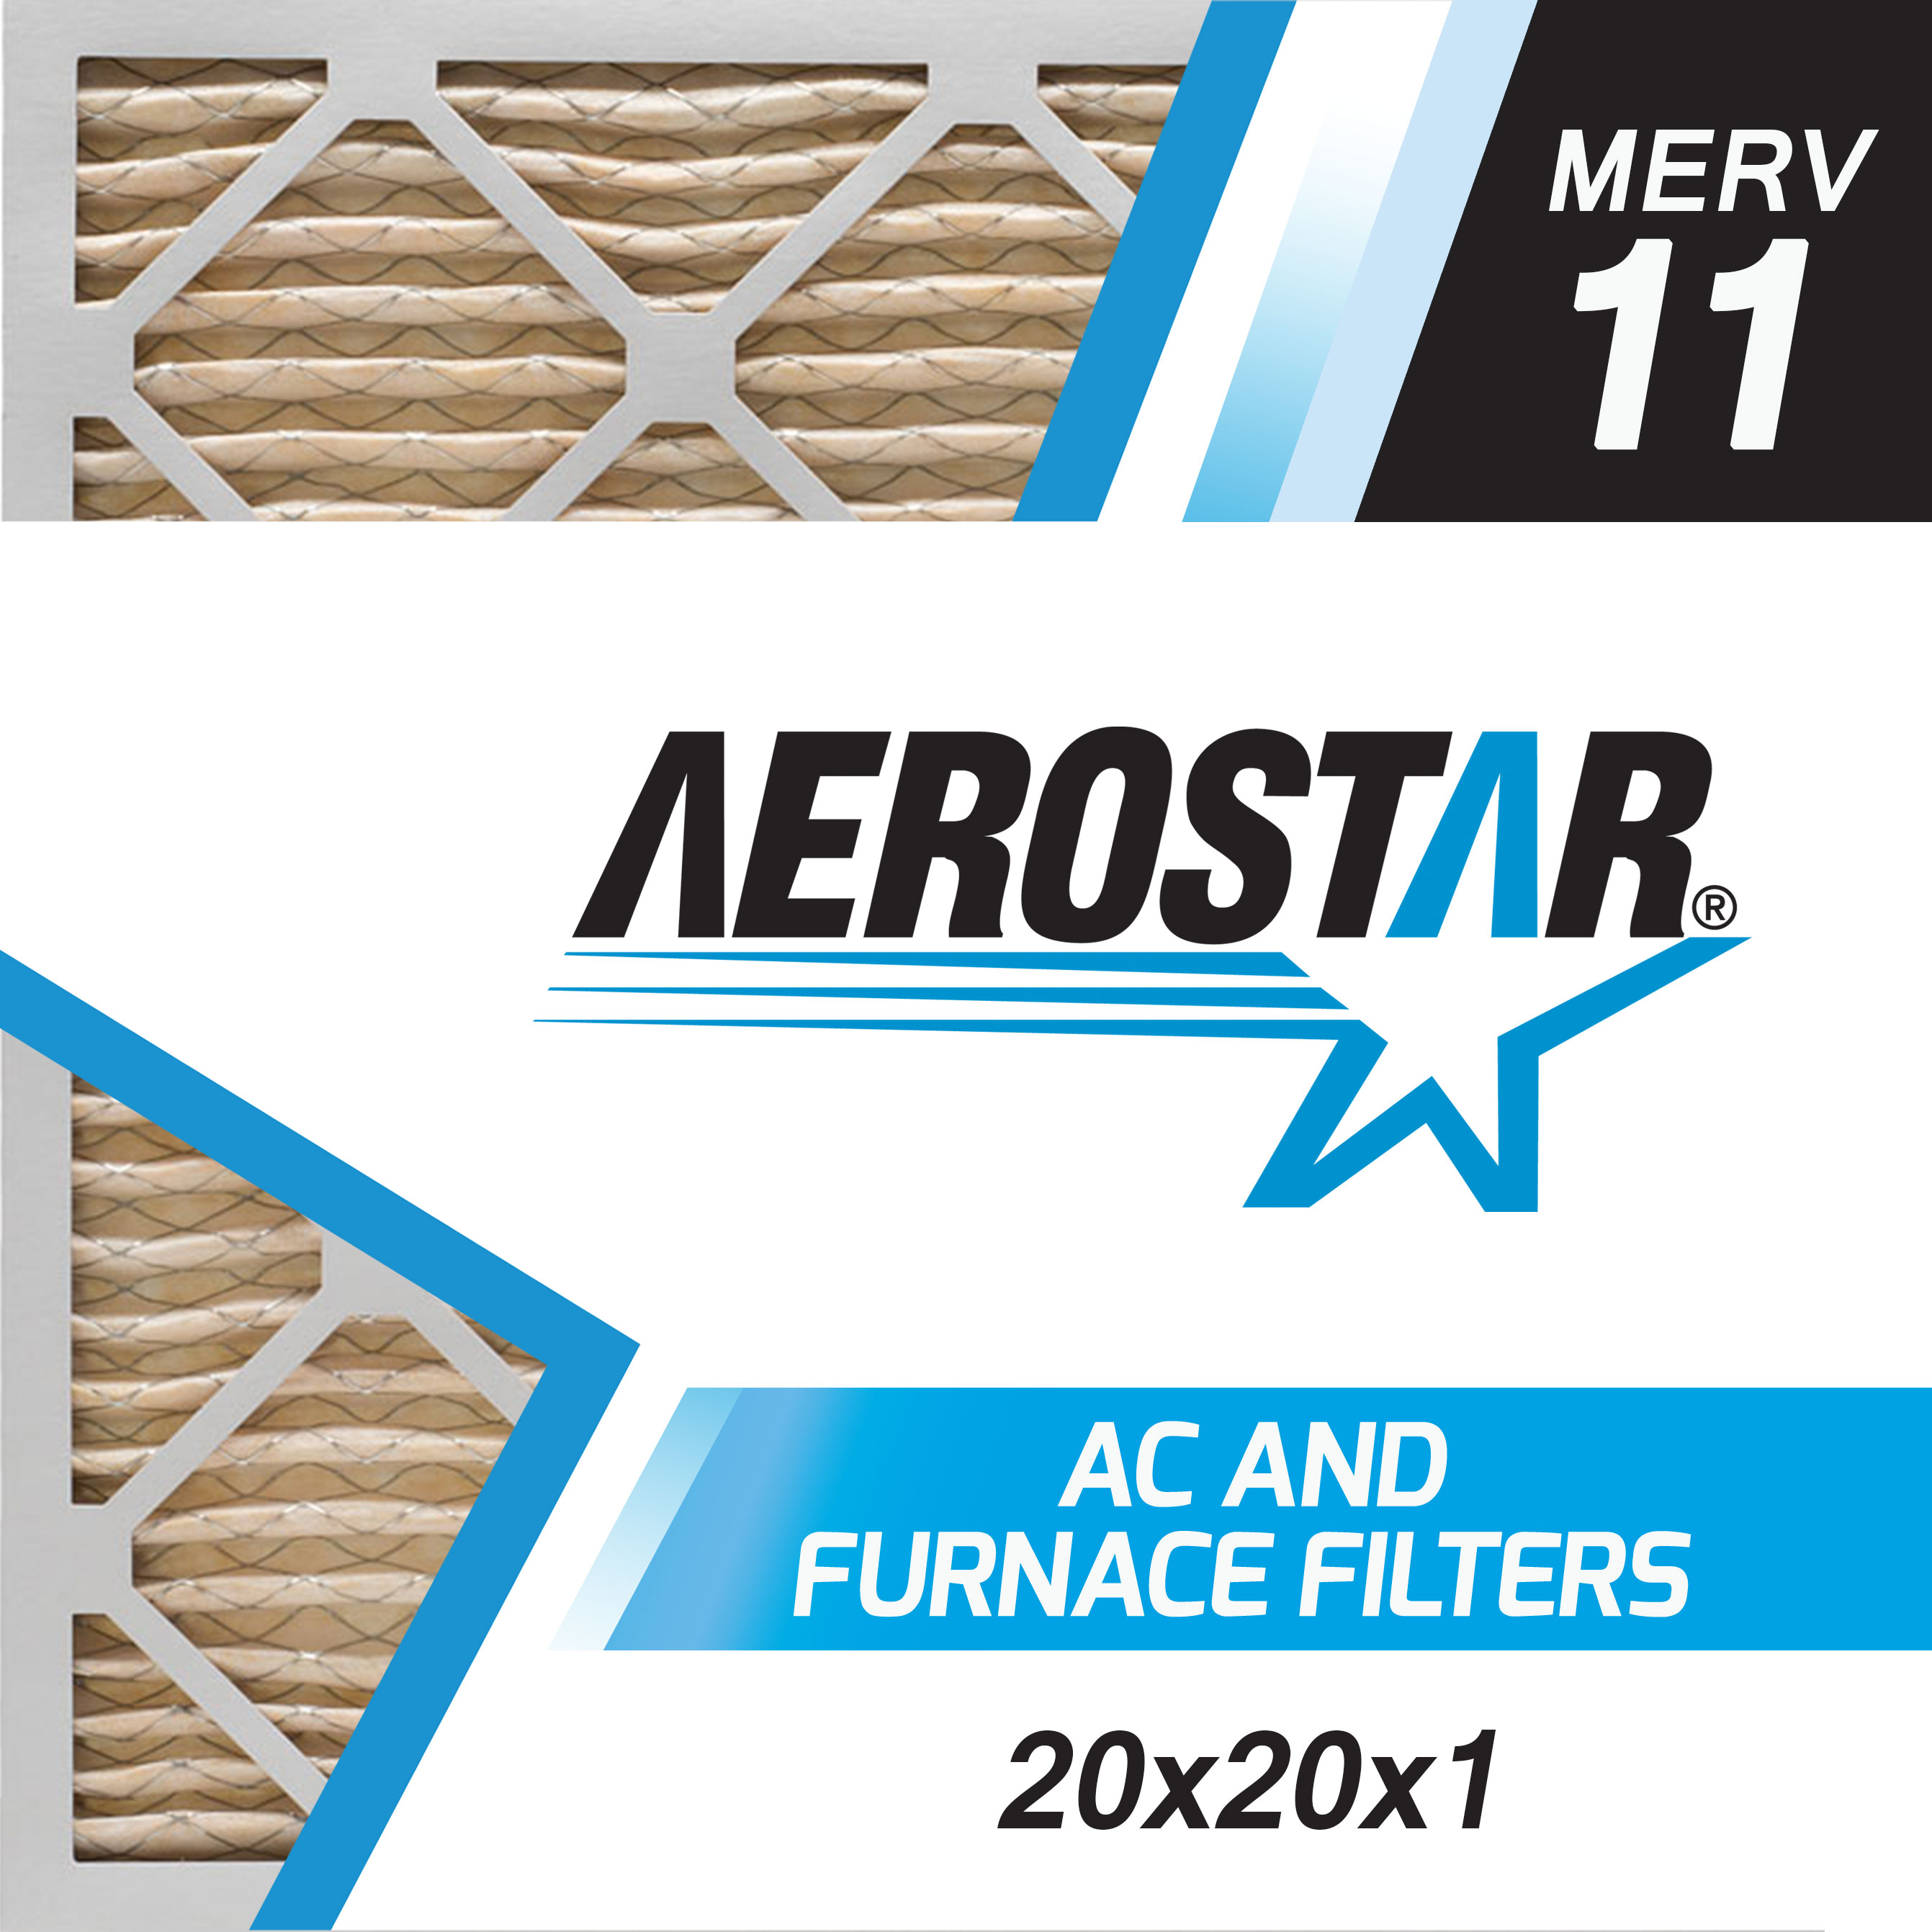 20x20x1 ac and furnace air filter by aerostar merv 11 box of 6 - Air Filters Delivered